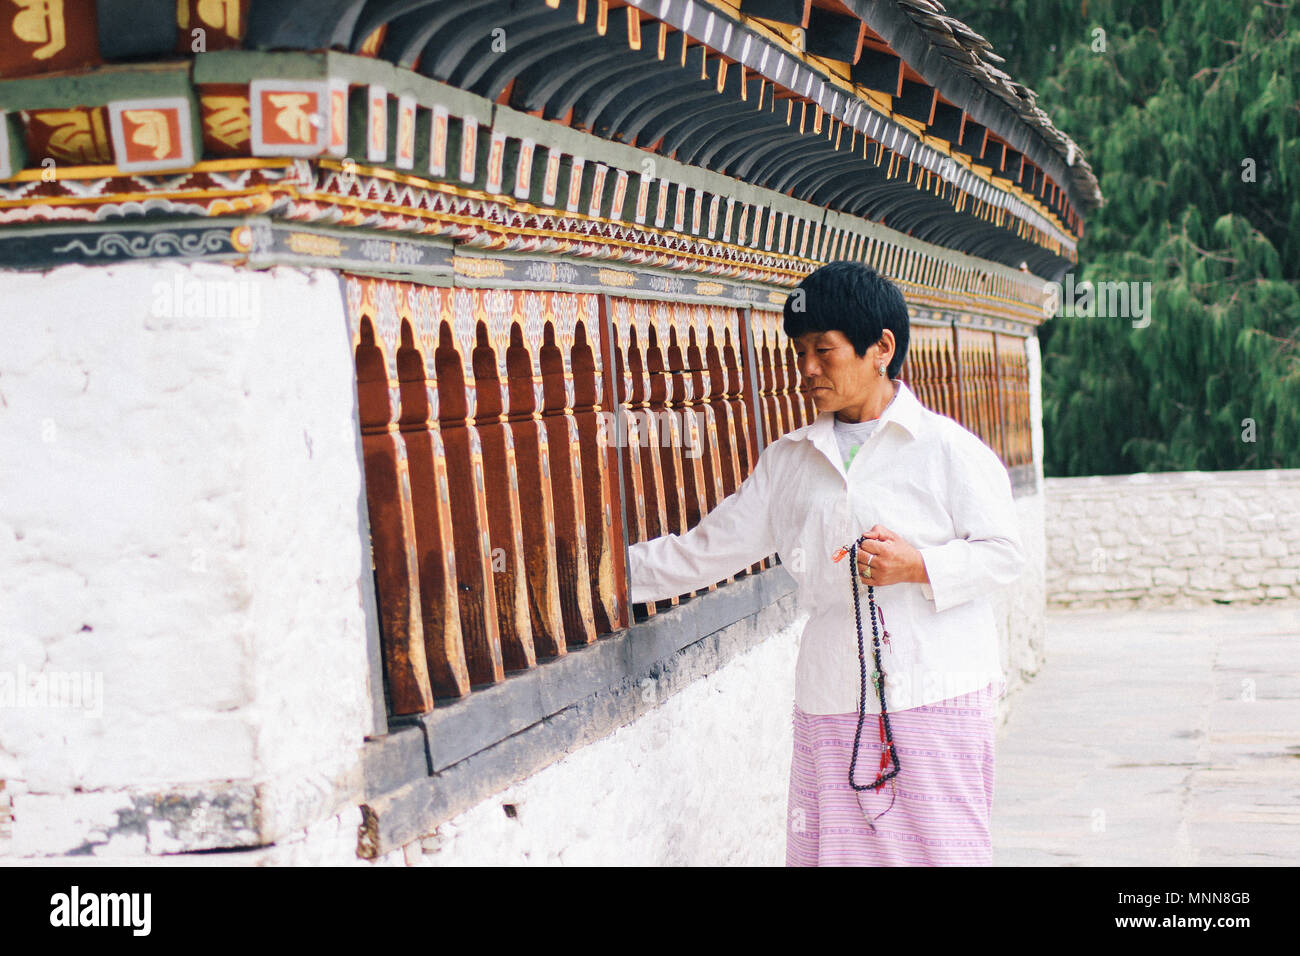 A Woman Spinning Prayer Wheels at Changangkha Lhakhang, Thimphu, Bhutan - Stock Image